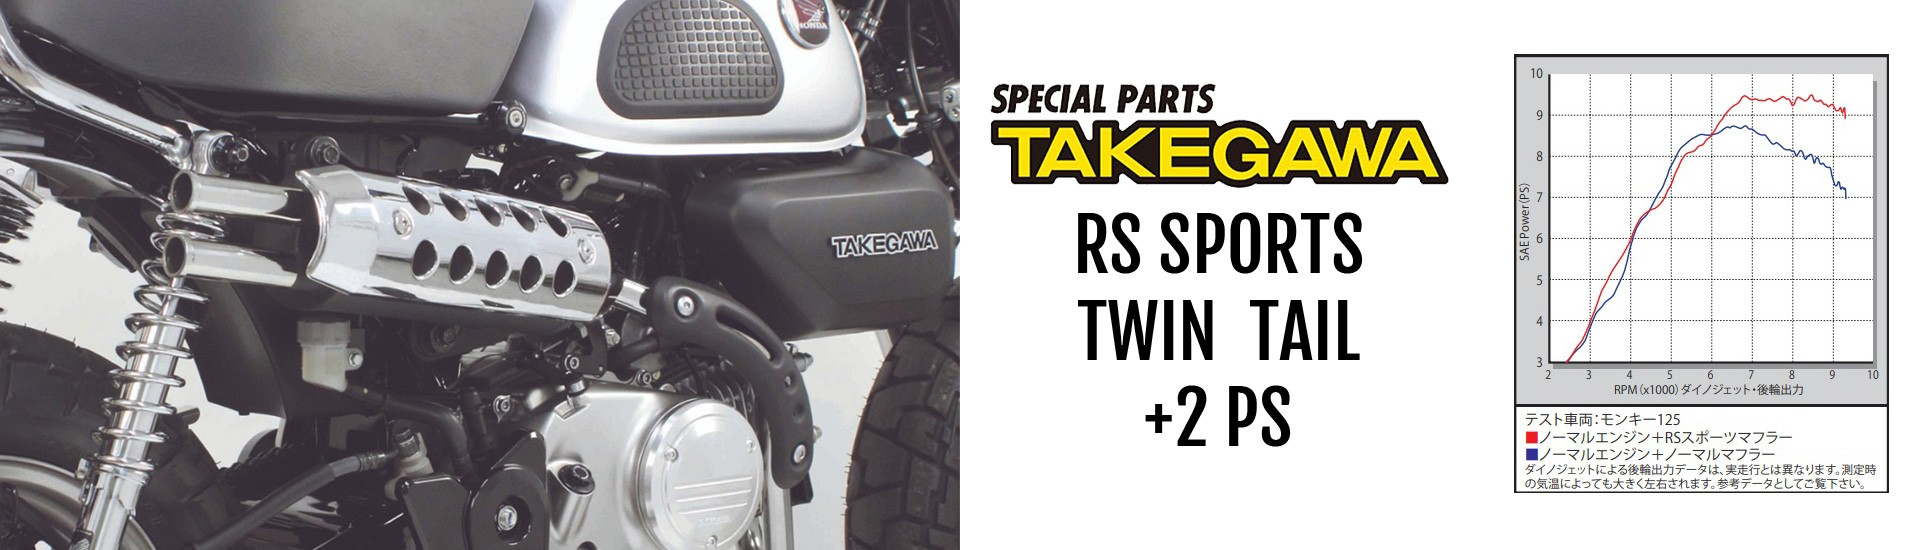 Takegawa RS Sports Twin Tail Auspuffanlage